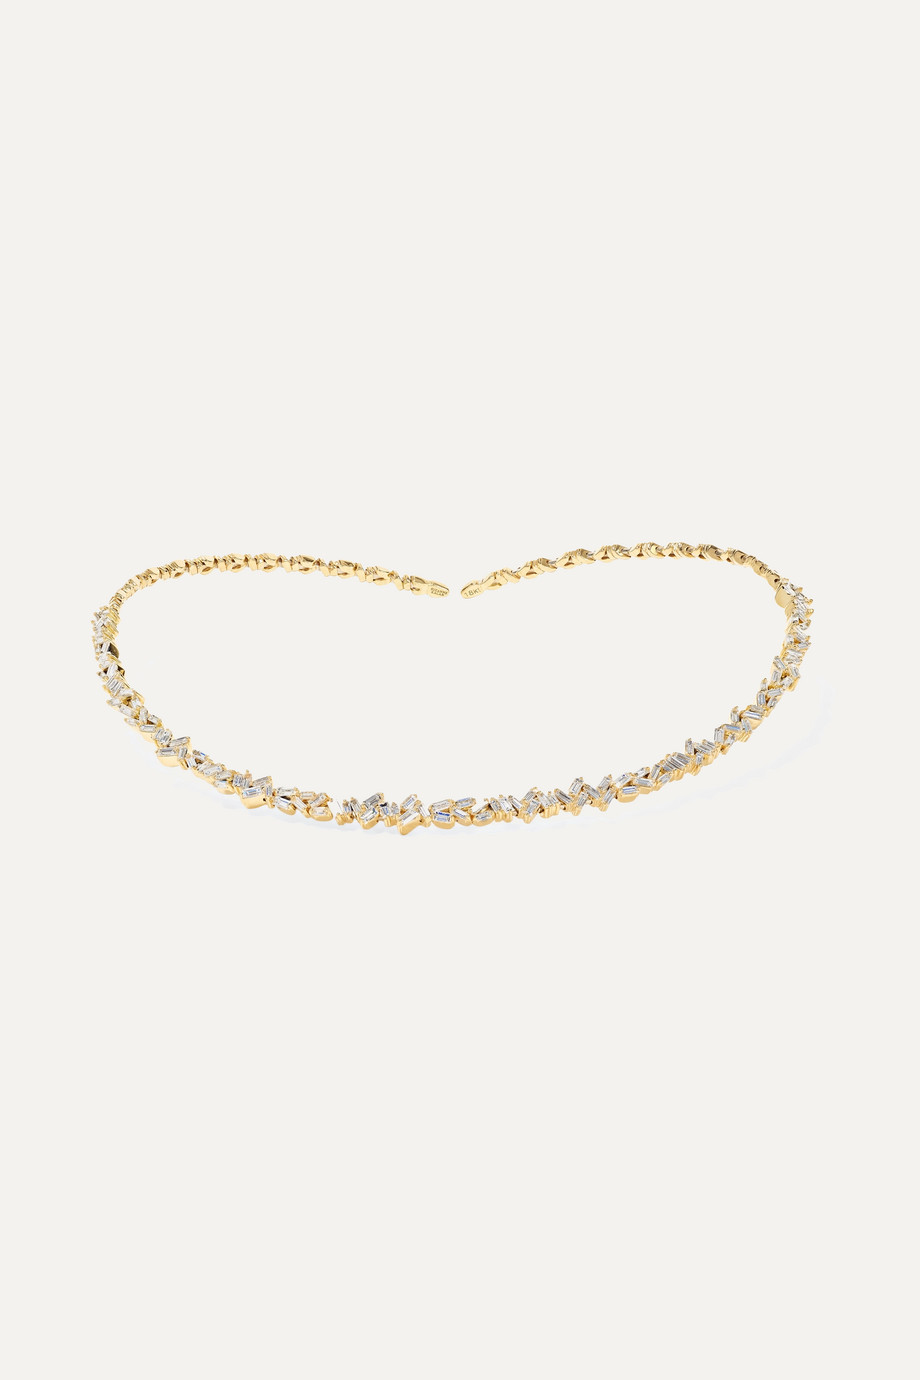 Suzanne Kalan 18-karat gold diamond collar